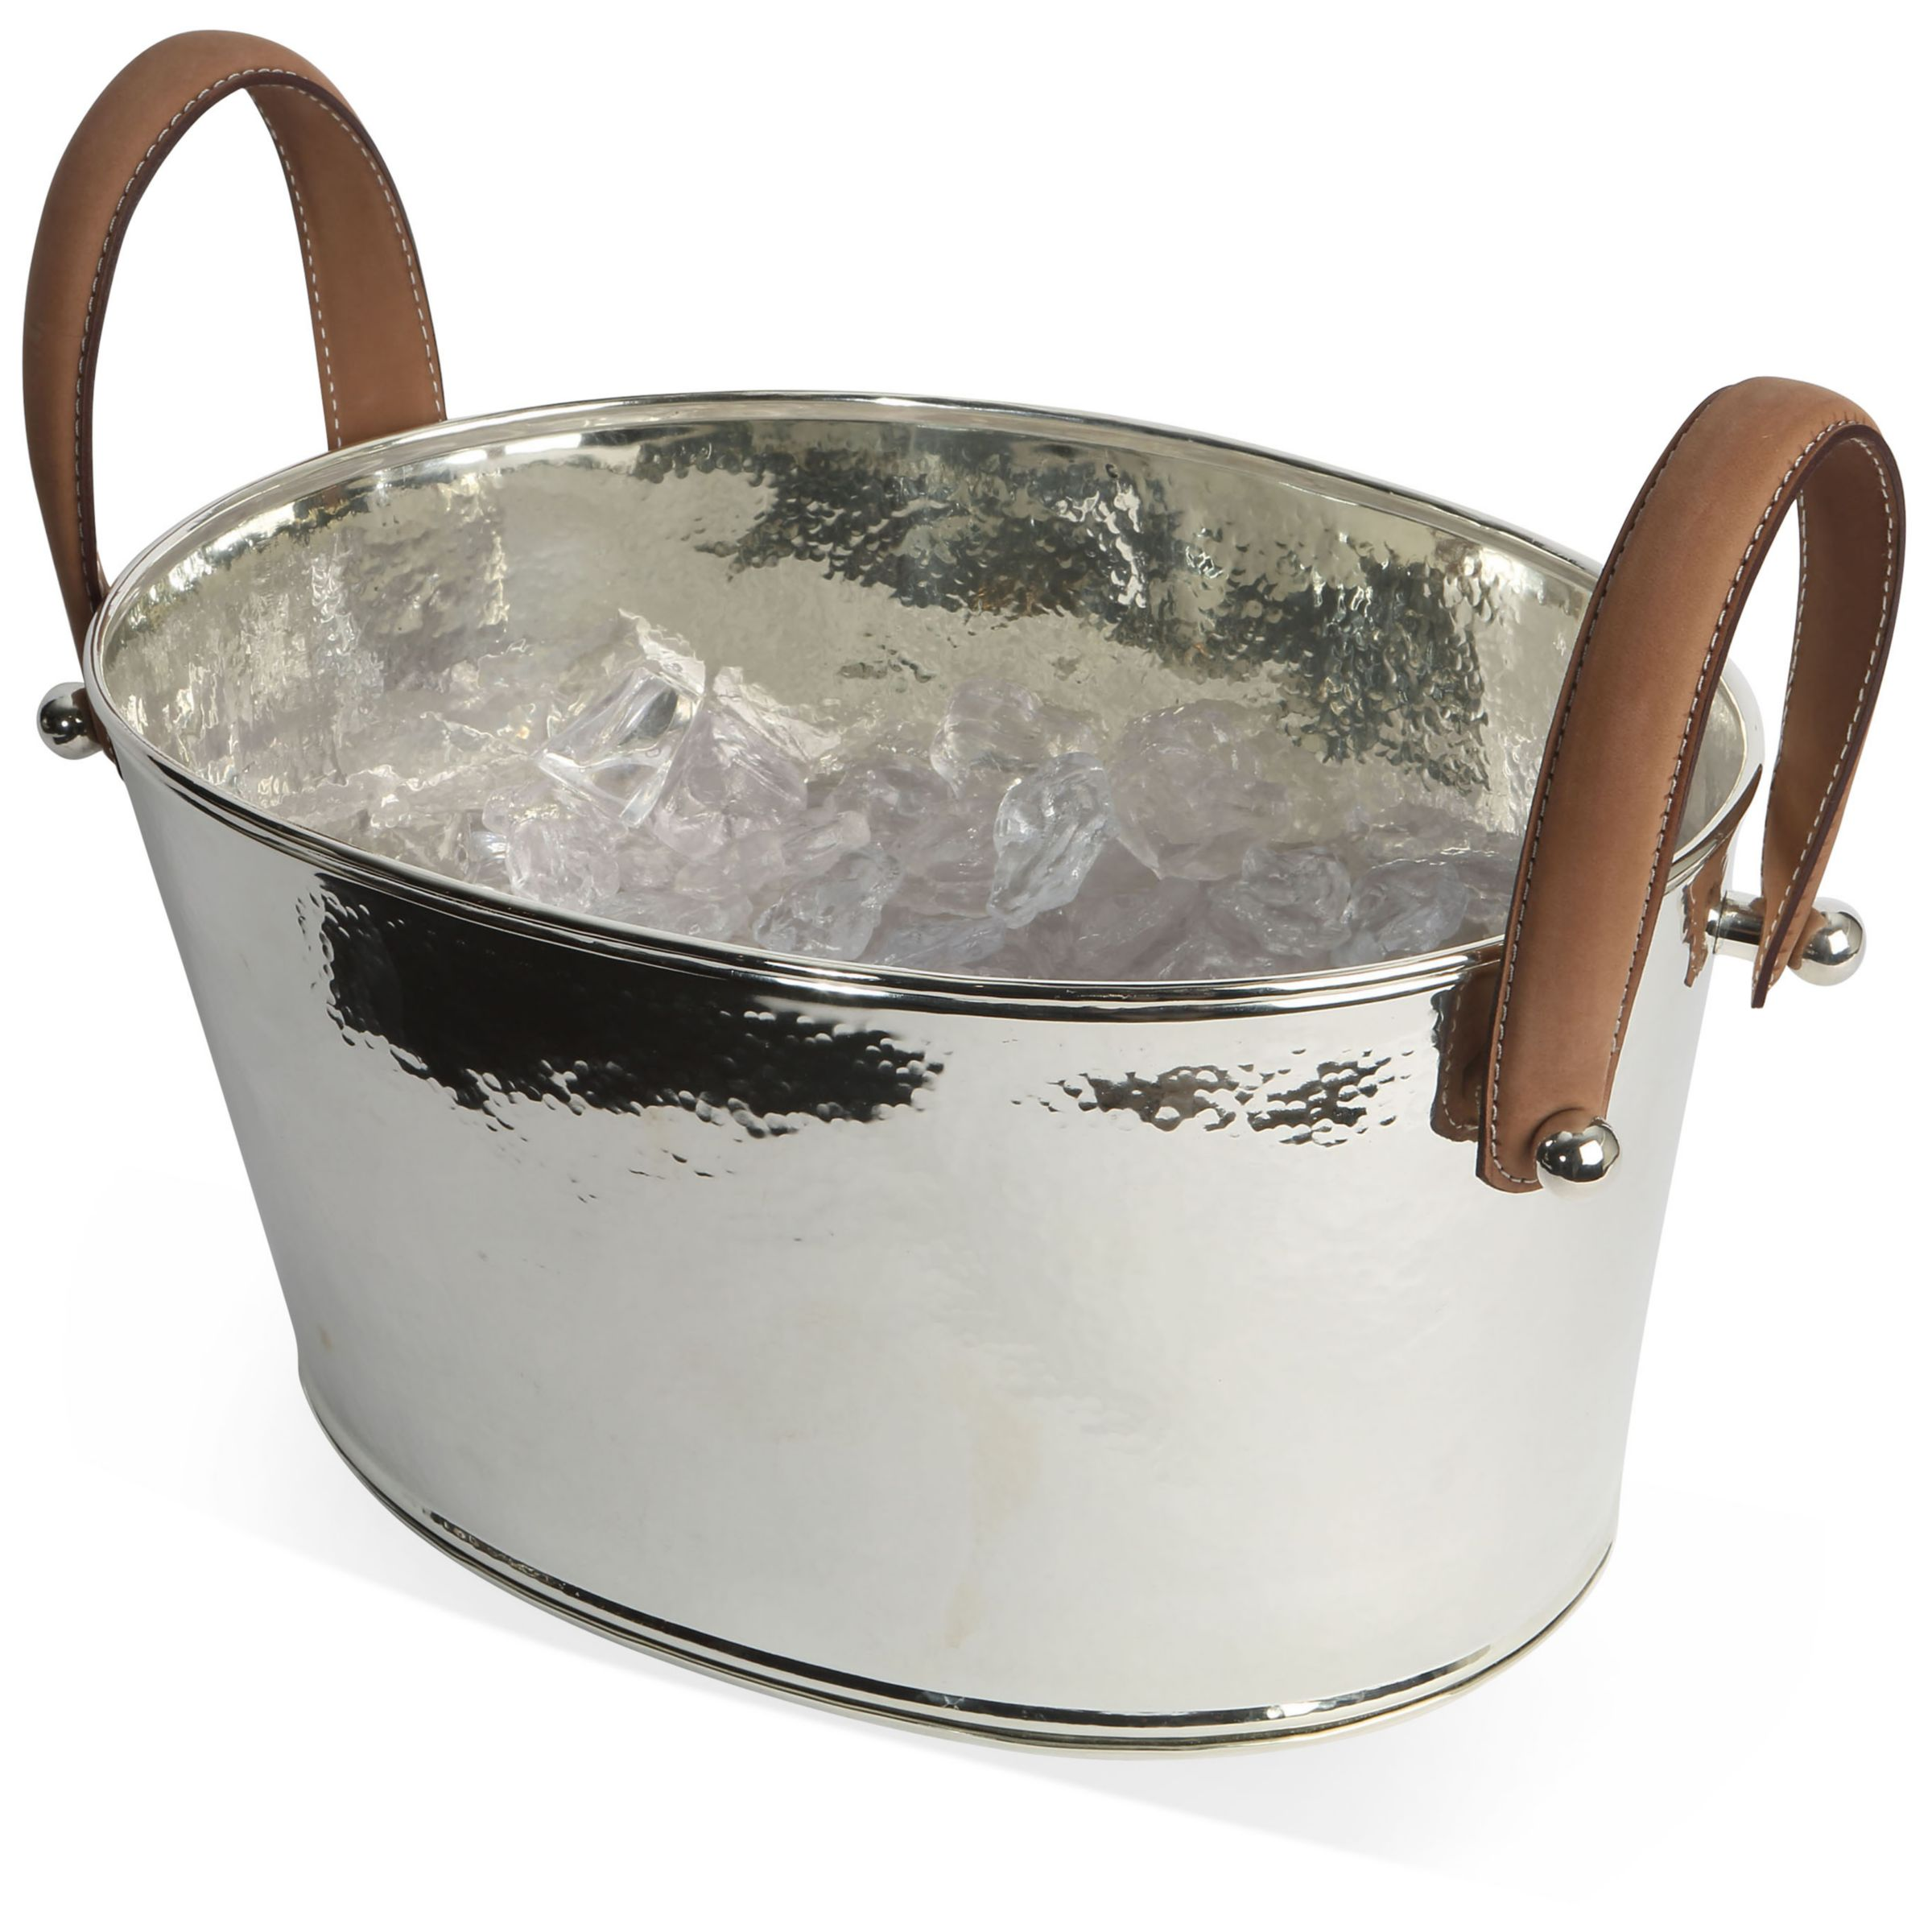 Culinary Concepts Culinary Concepts Half Champagne Bath Hammered